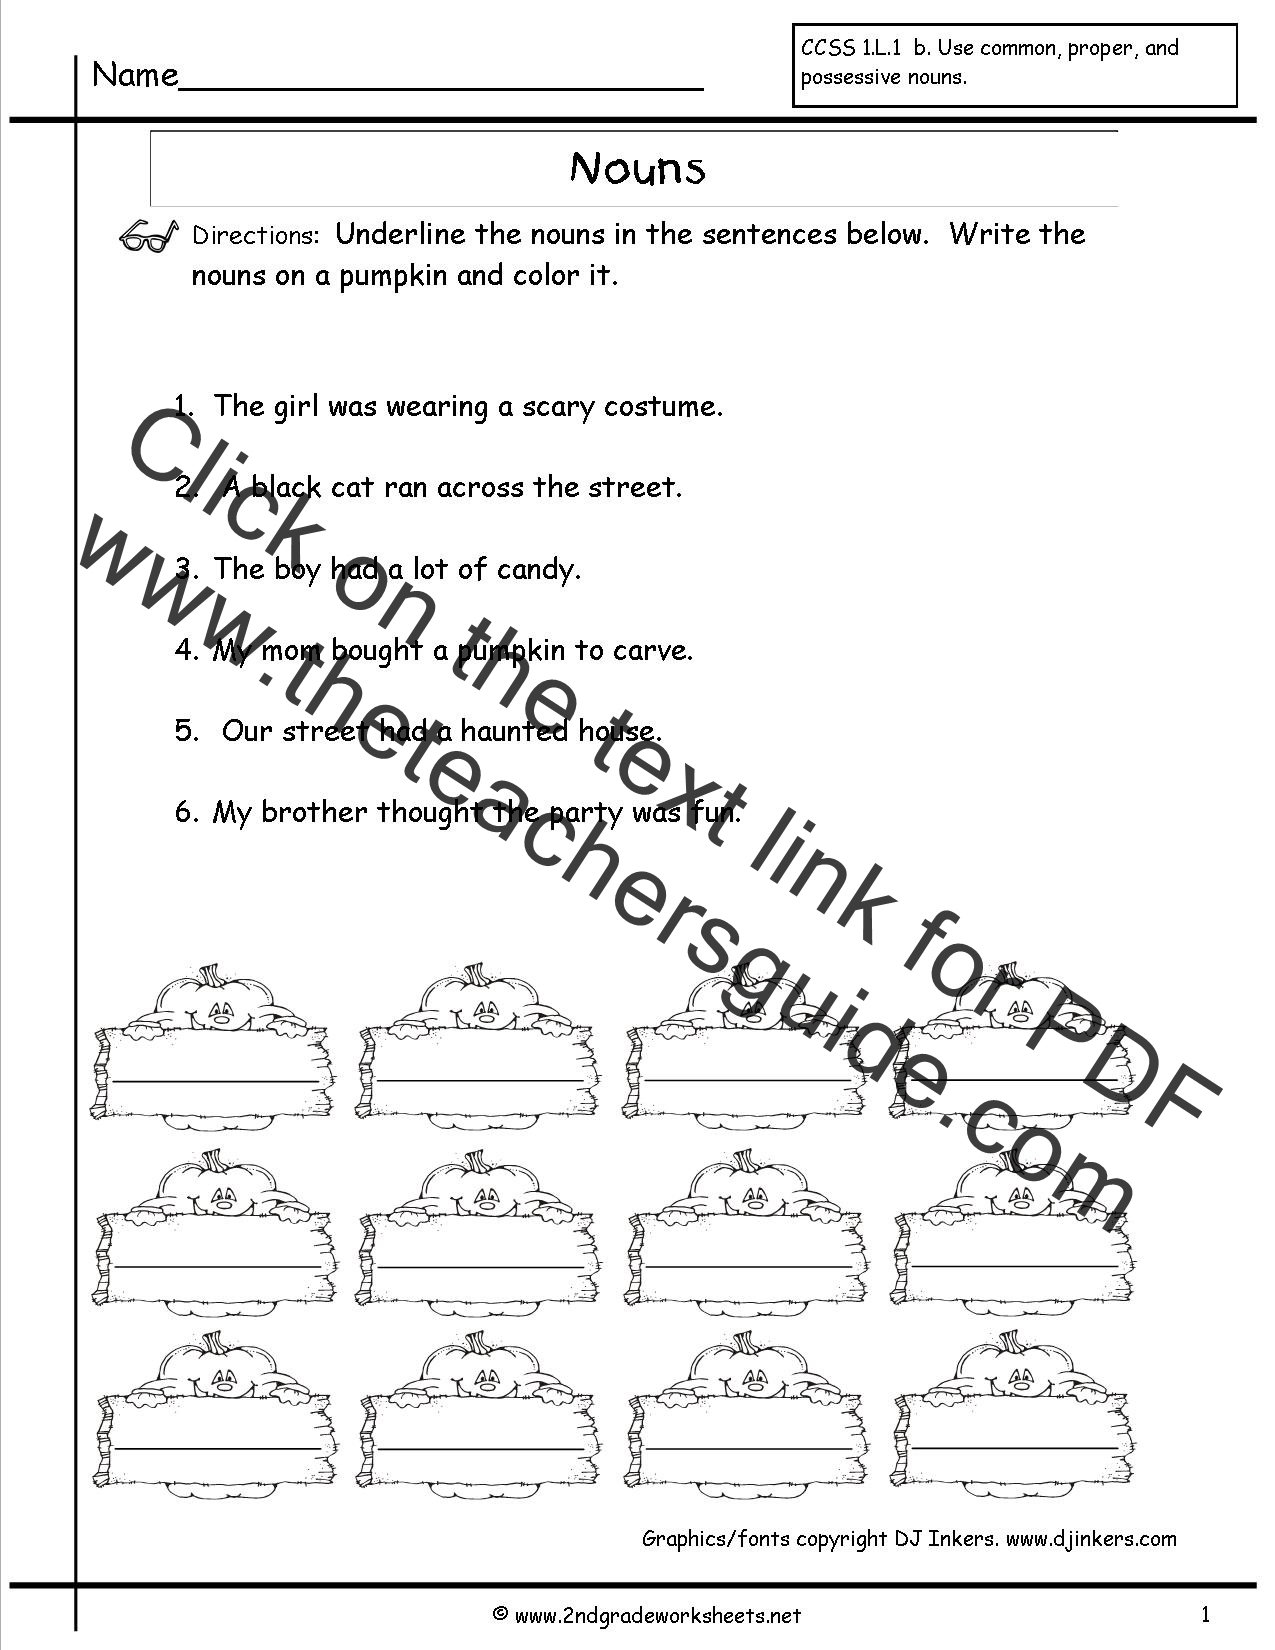 Nouns Worksheets and Printouts – Nouns and Pronouns Worksheet